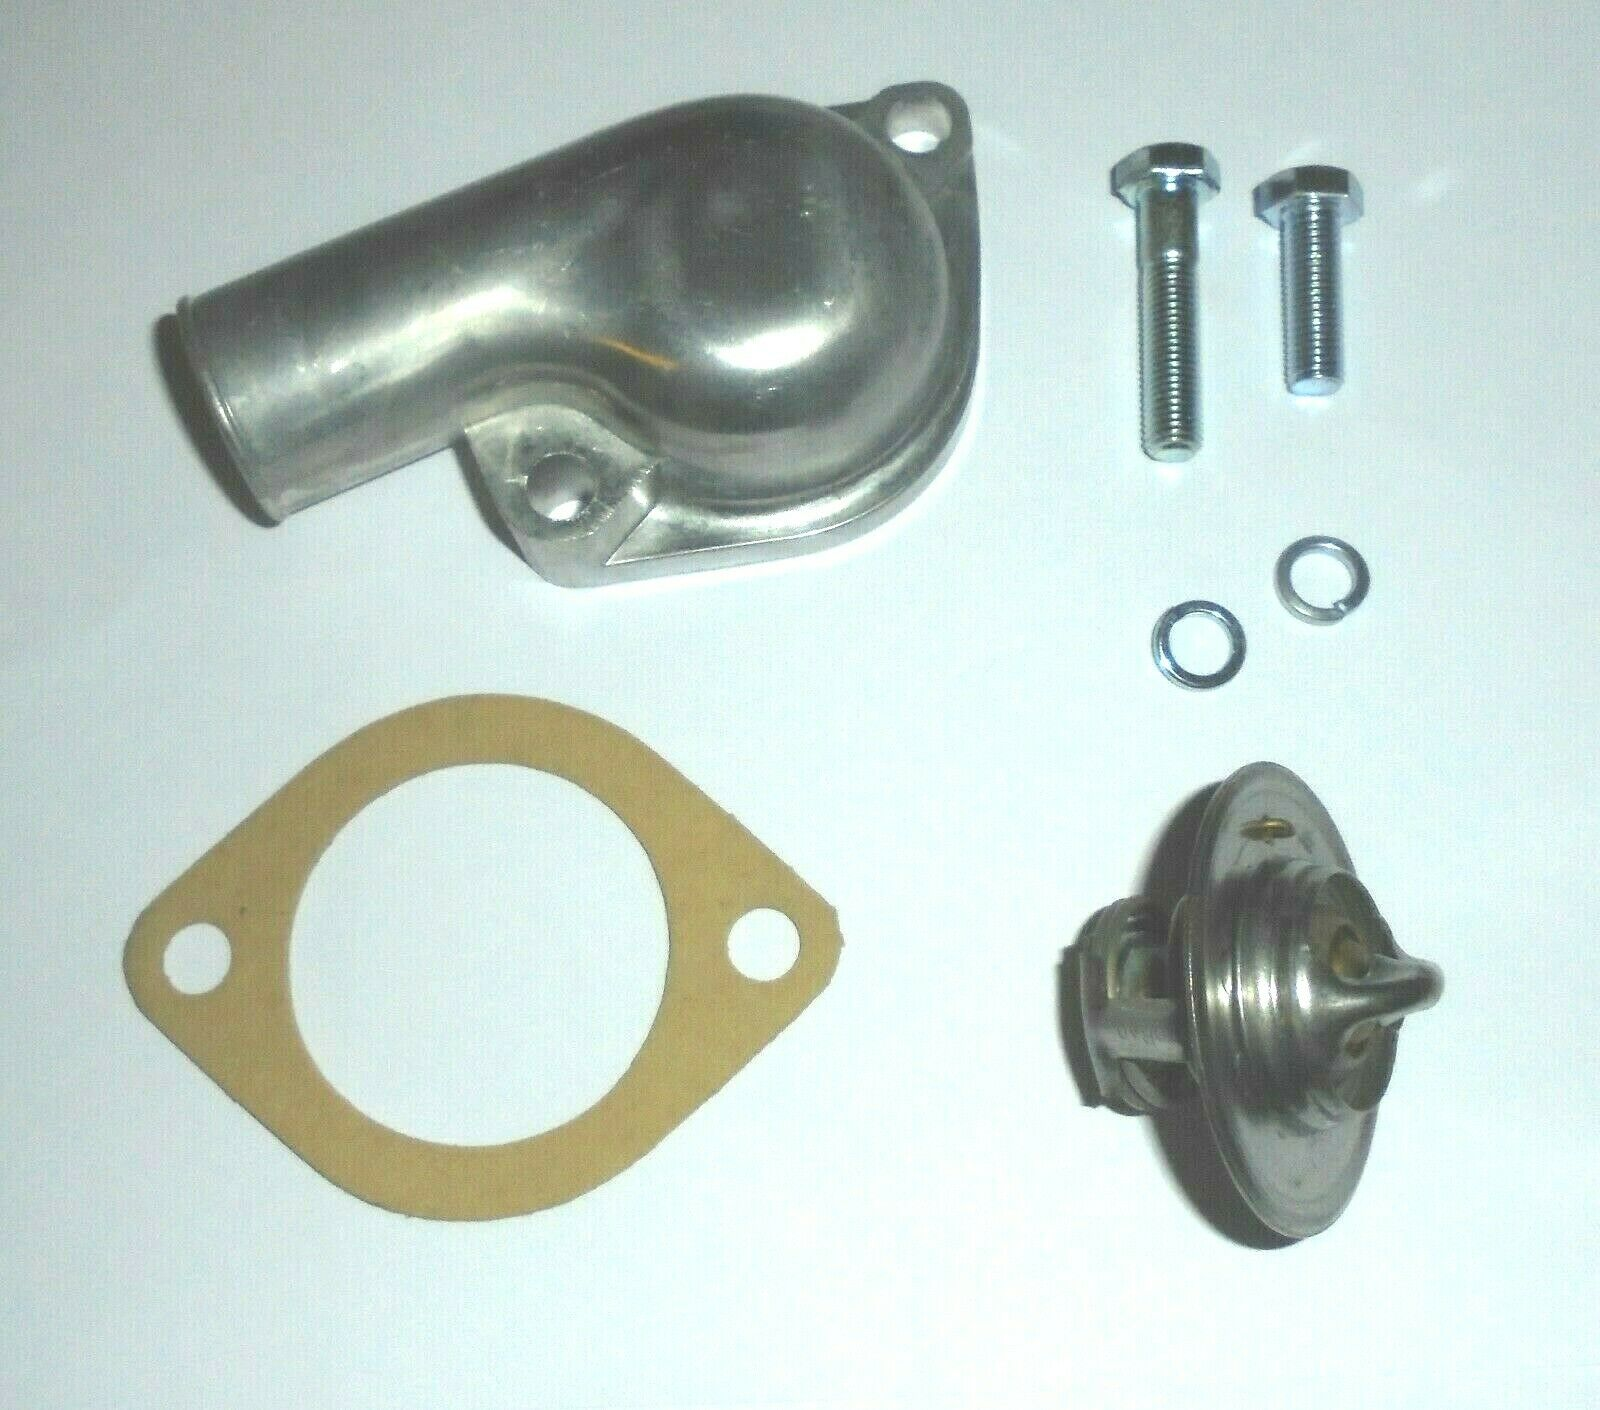 THERMOSTAT, HOUSING, GASKET & BOLTS KIT (Triumph Dolomite) (1300 & 1500) (1976- 80)